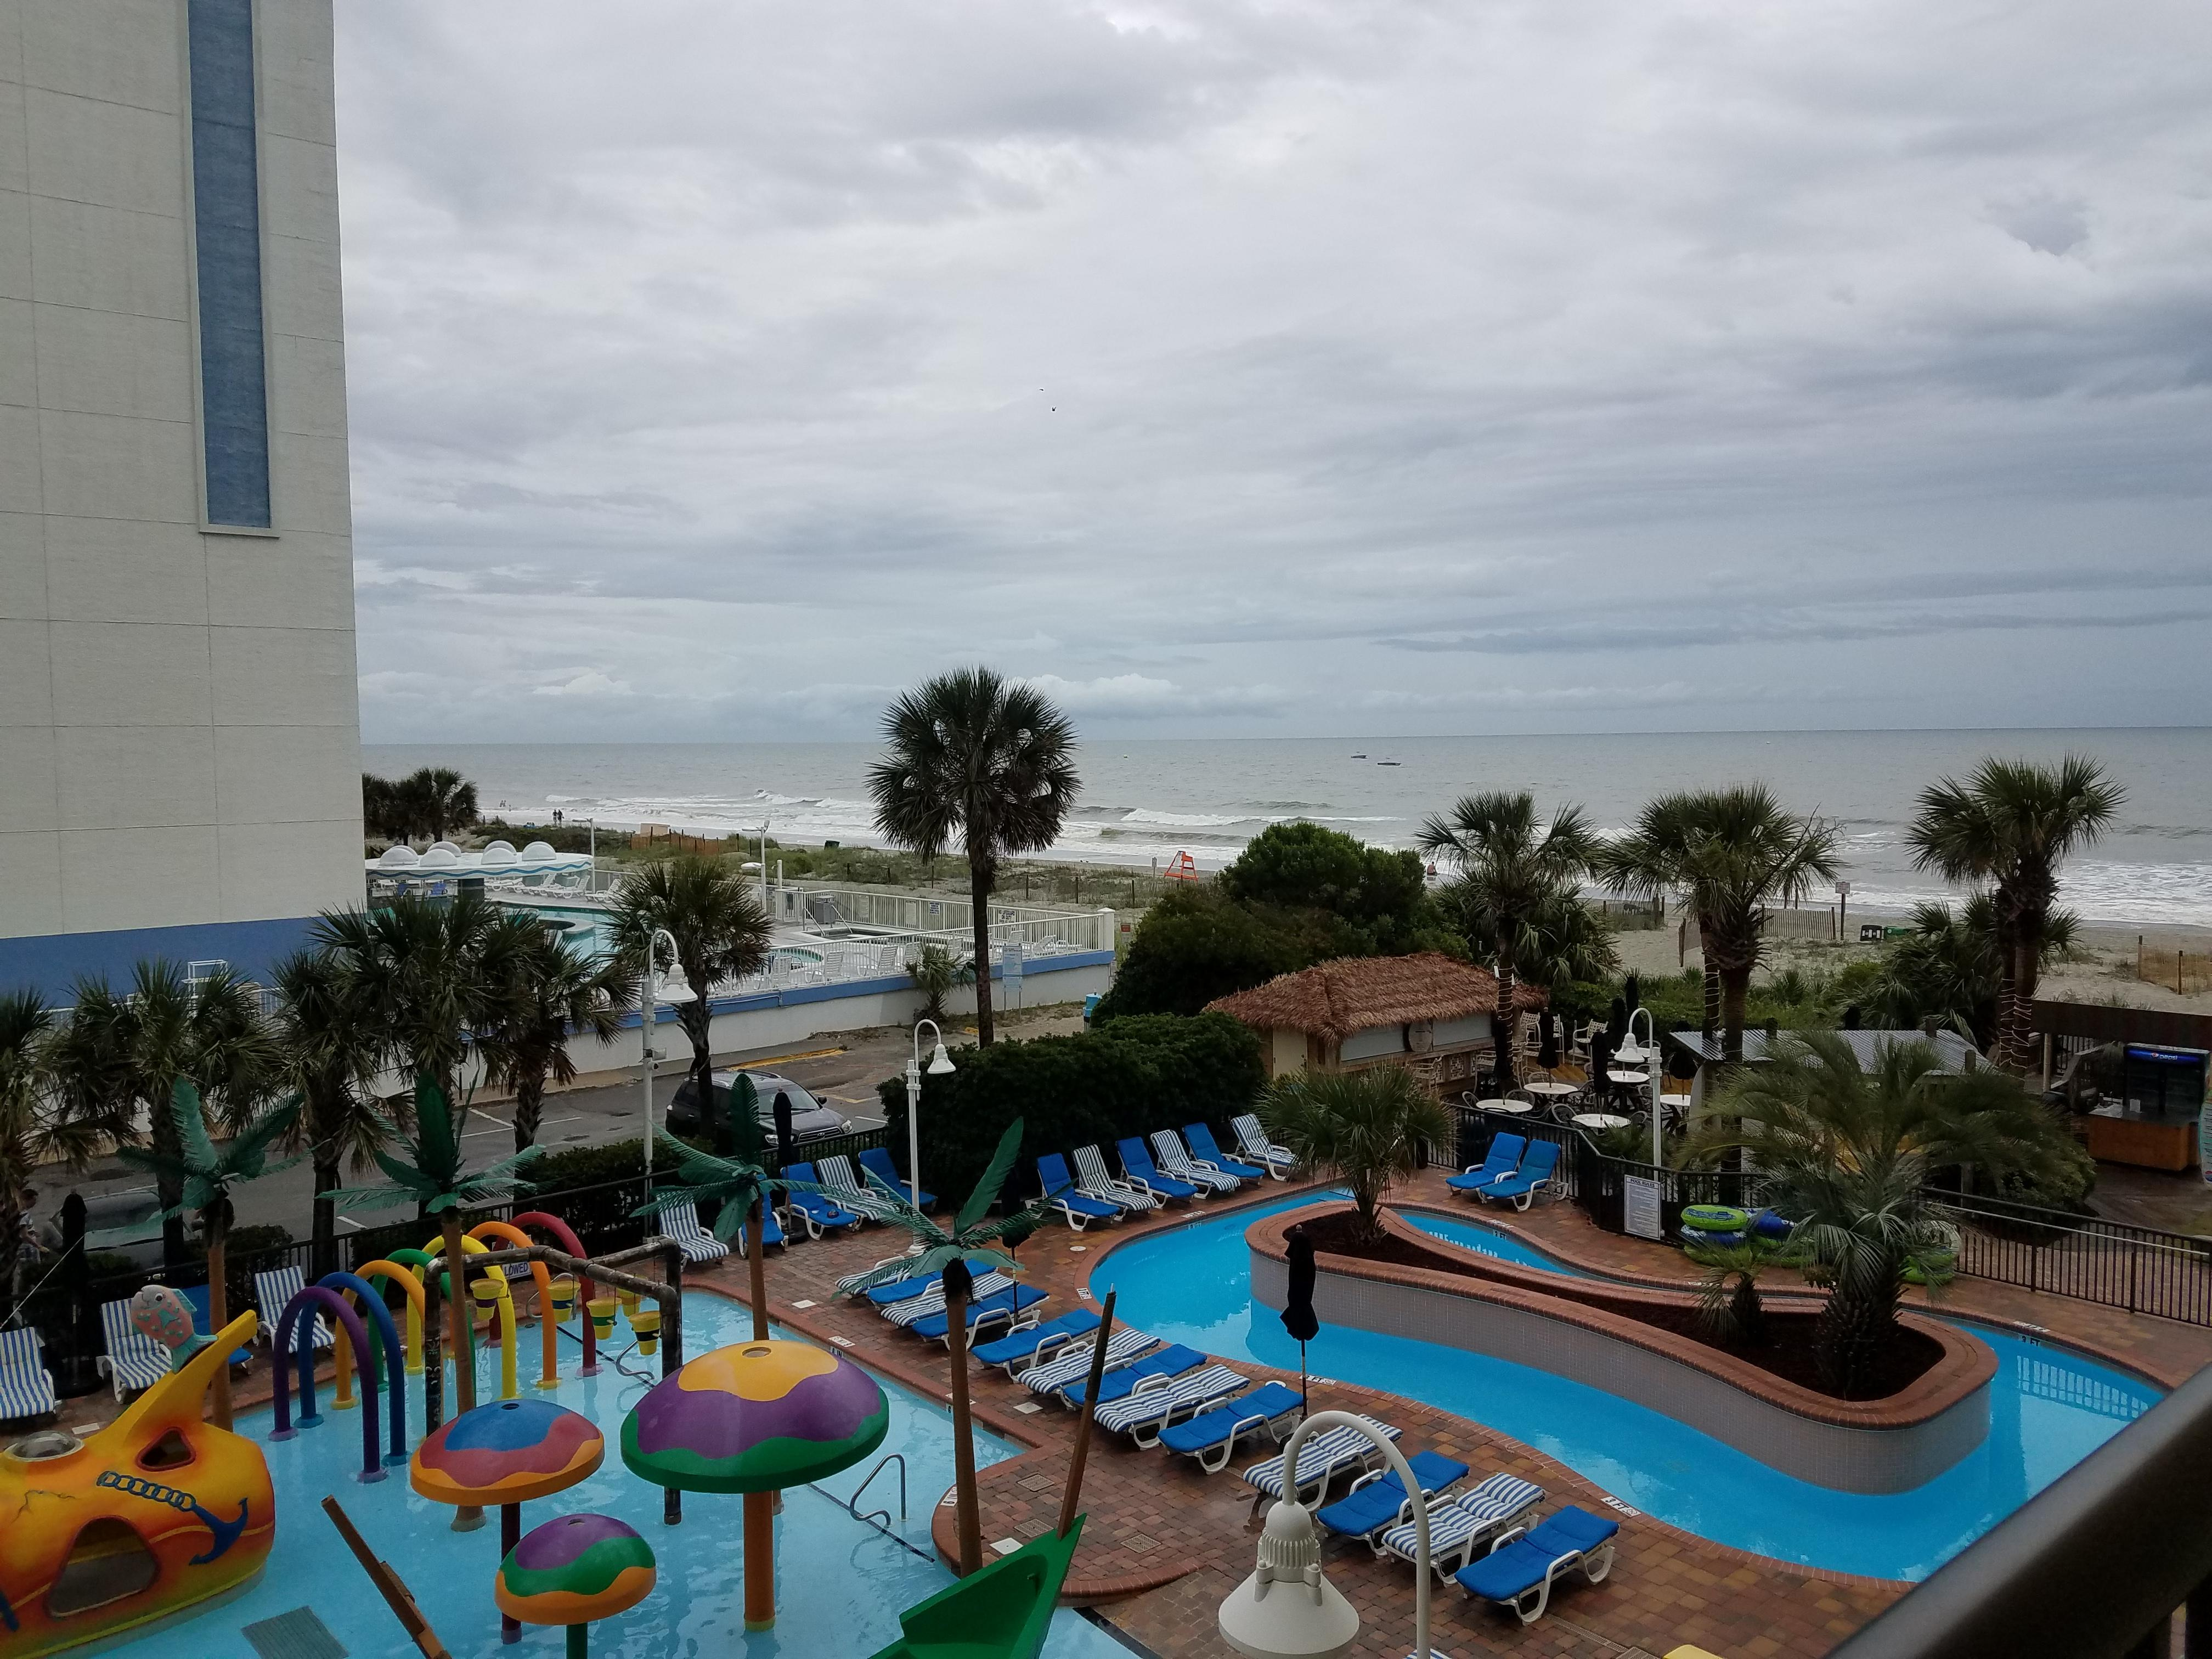 The view from the room